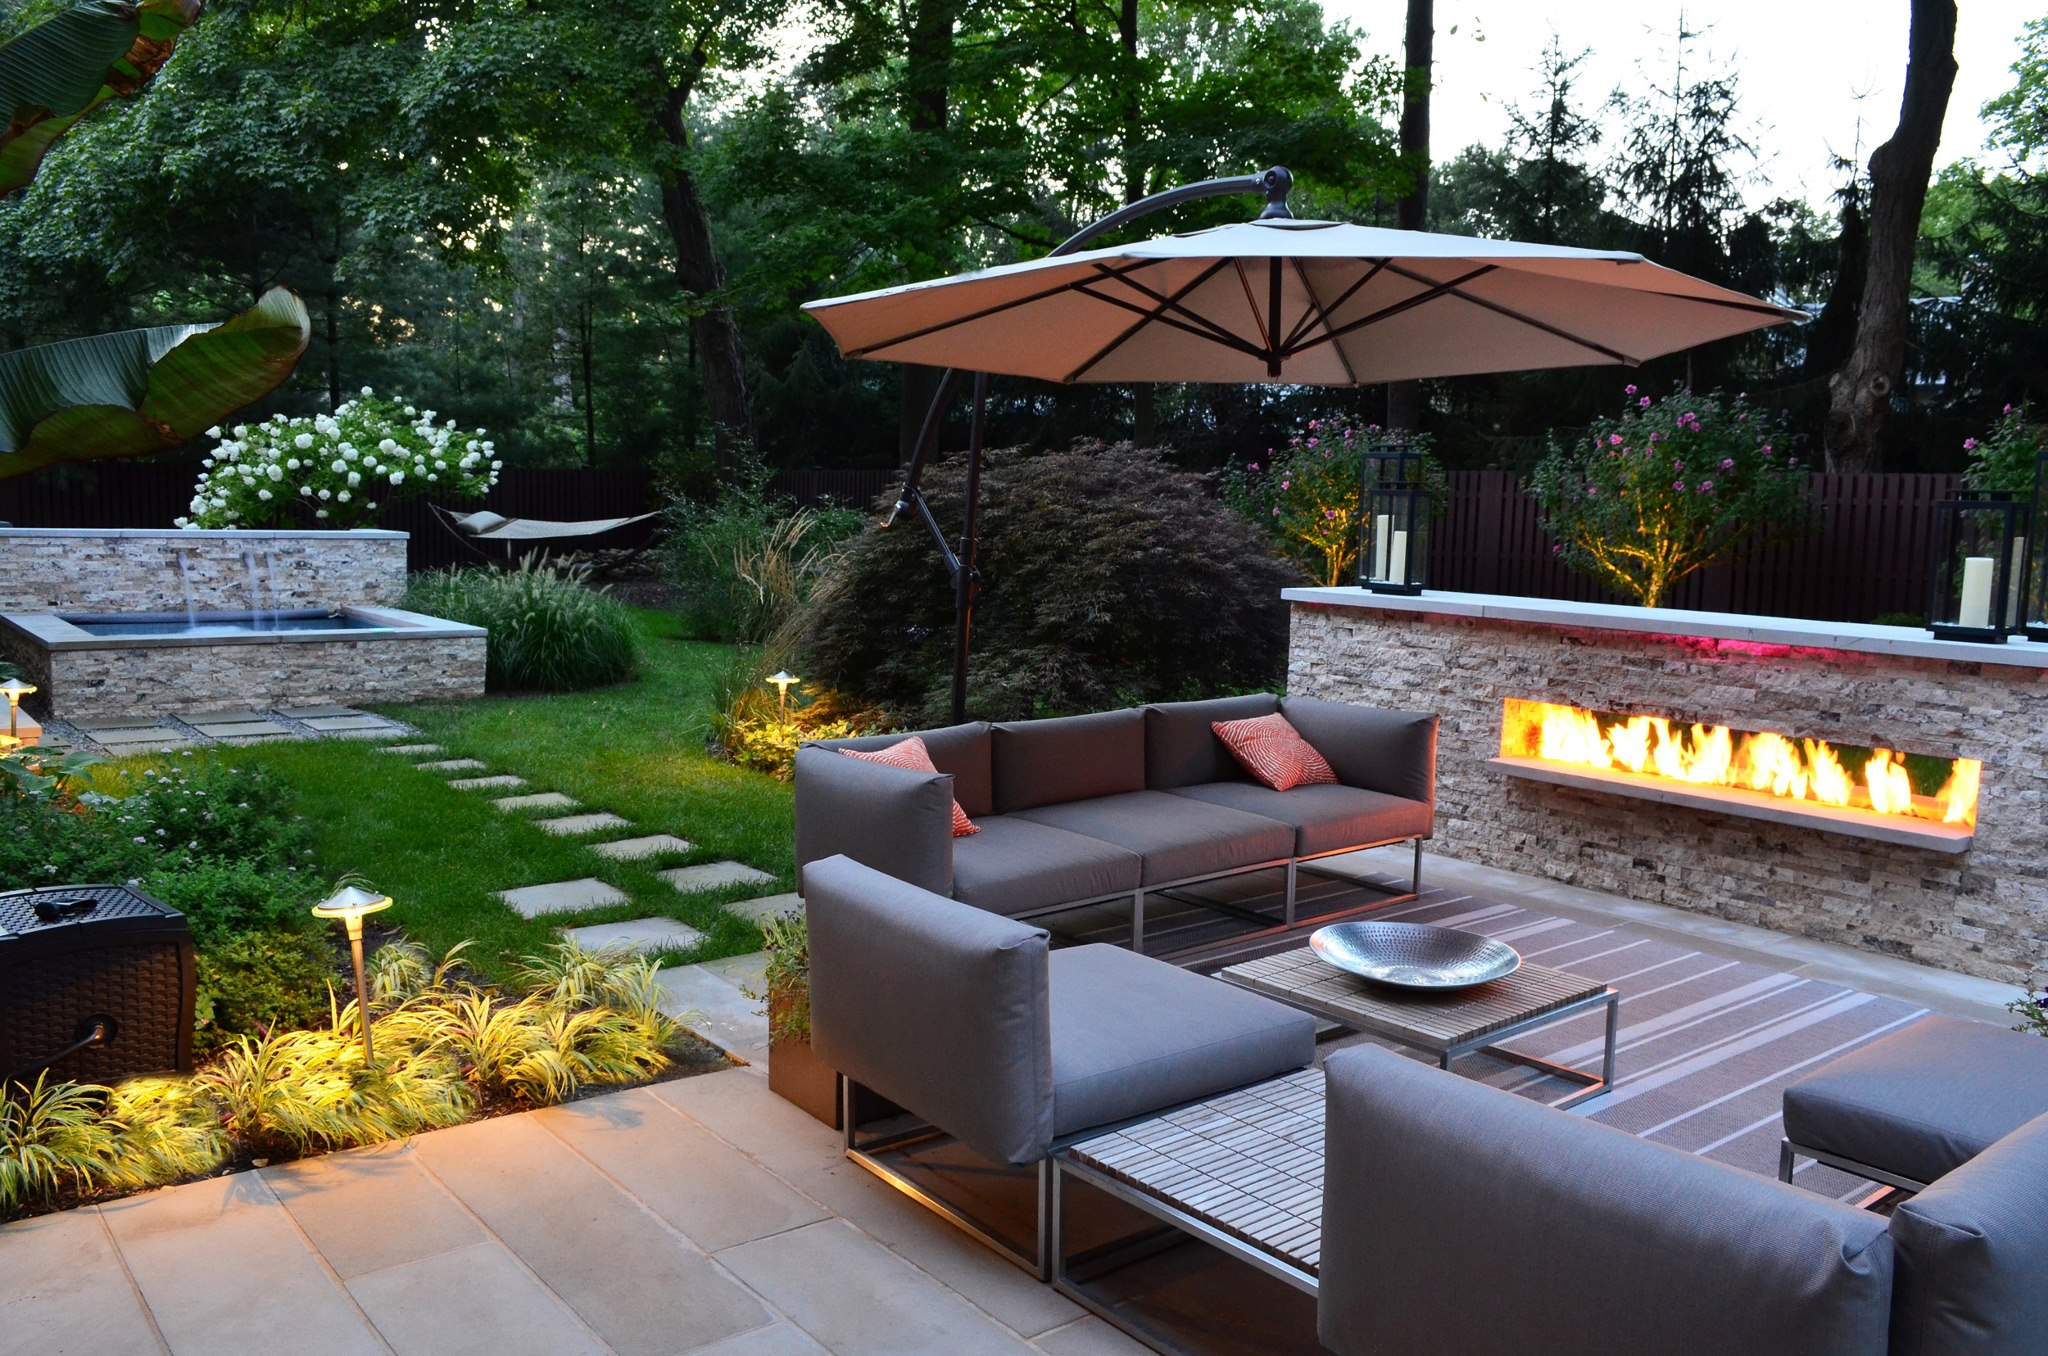 Backyard Landscaping Designs for Small Spaces  Home Design